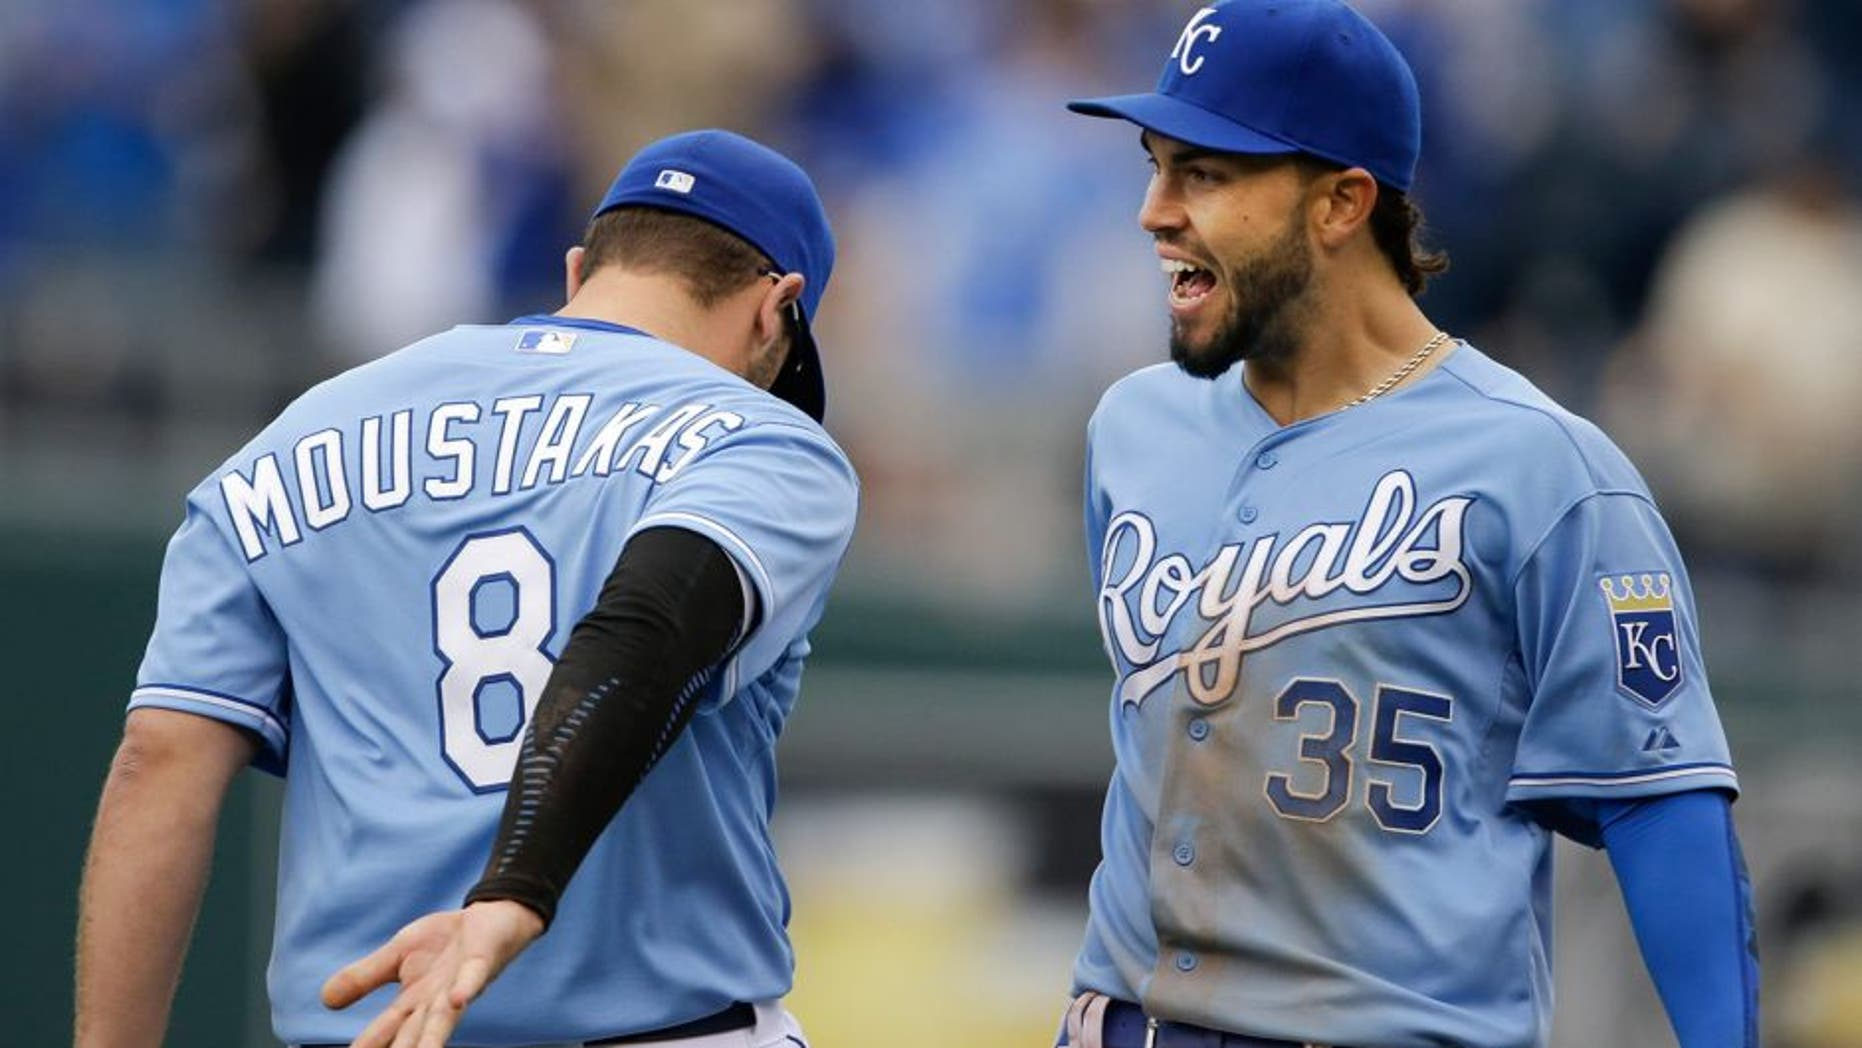 Kansas City Royals first baseman Eric Hosmer (35) and third baseman Mike Moustakas (8) celebrate following a baseball game against the Chicago White Sox at Kauffman Stadium in Kansas City, Mo., Thursday, April 9, 2015. The Royals defeated the White Sox 4-1. (AP Photo/Orlin Wagner)